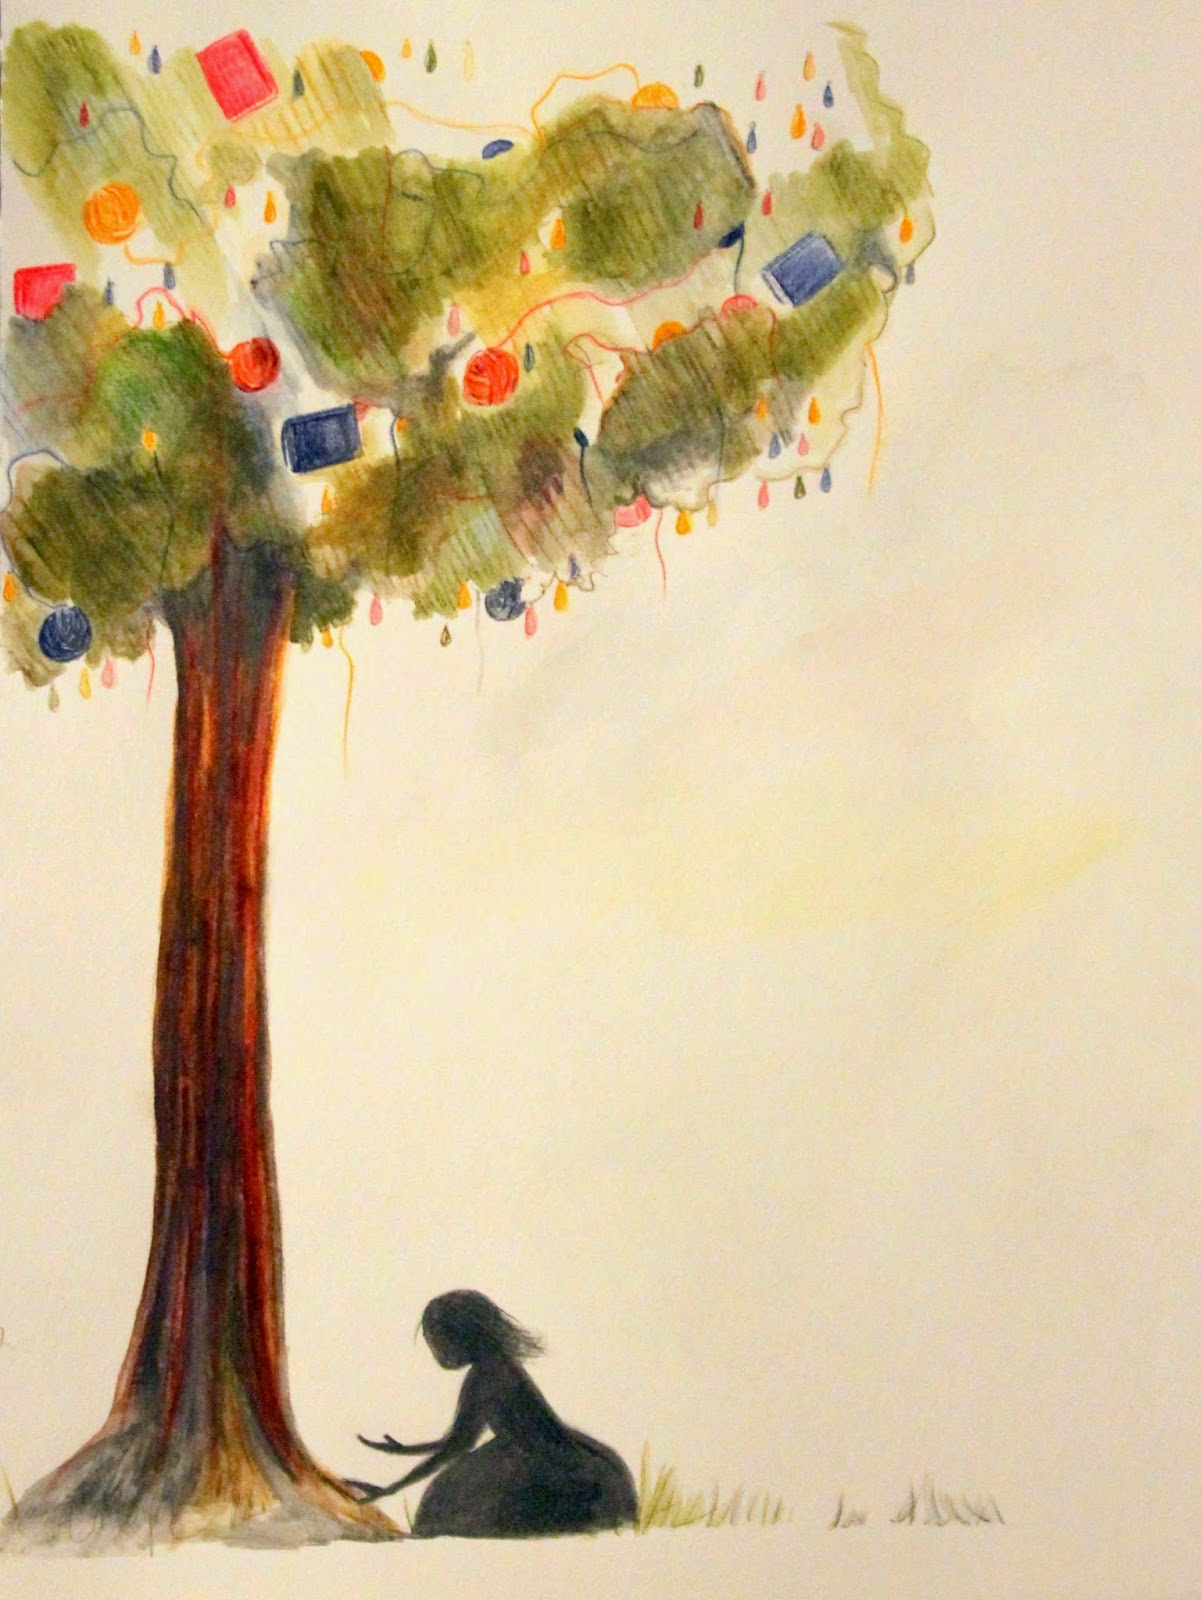 Book and yarn tree silhouette girl